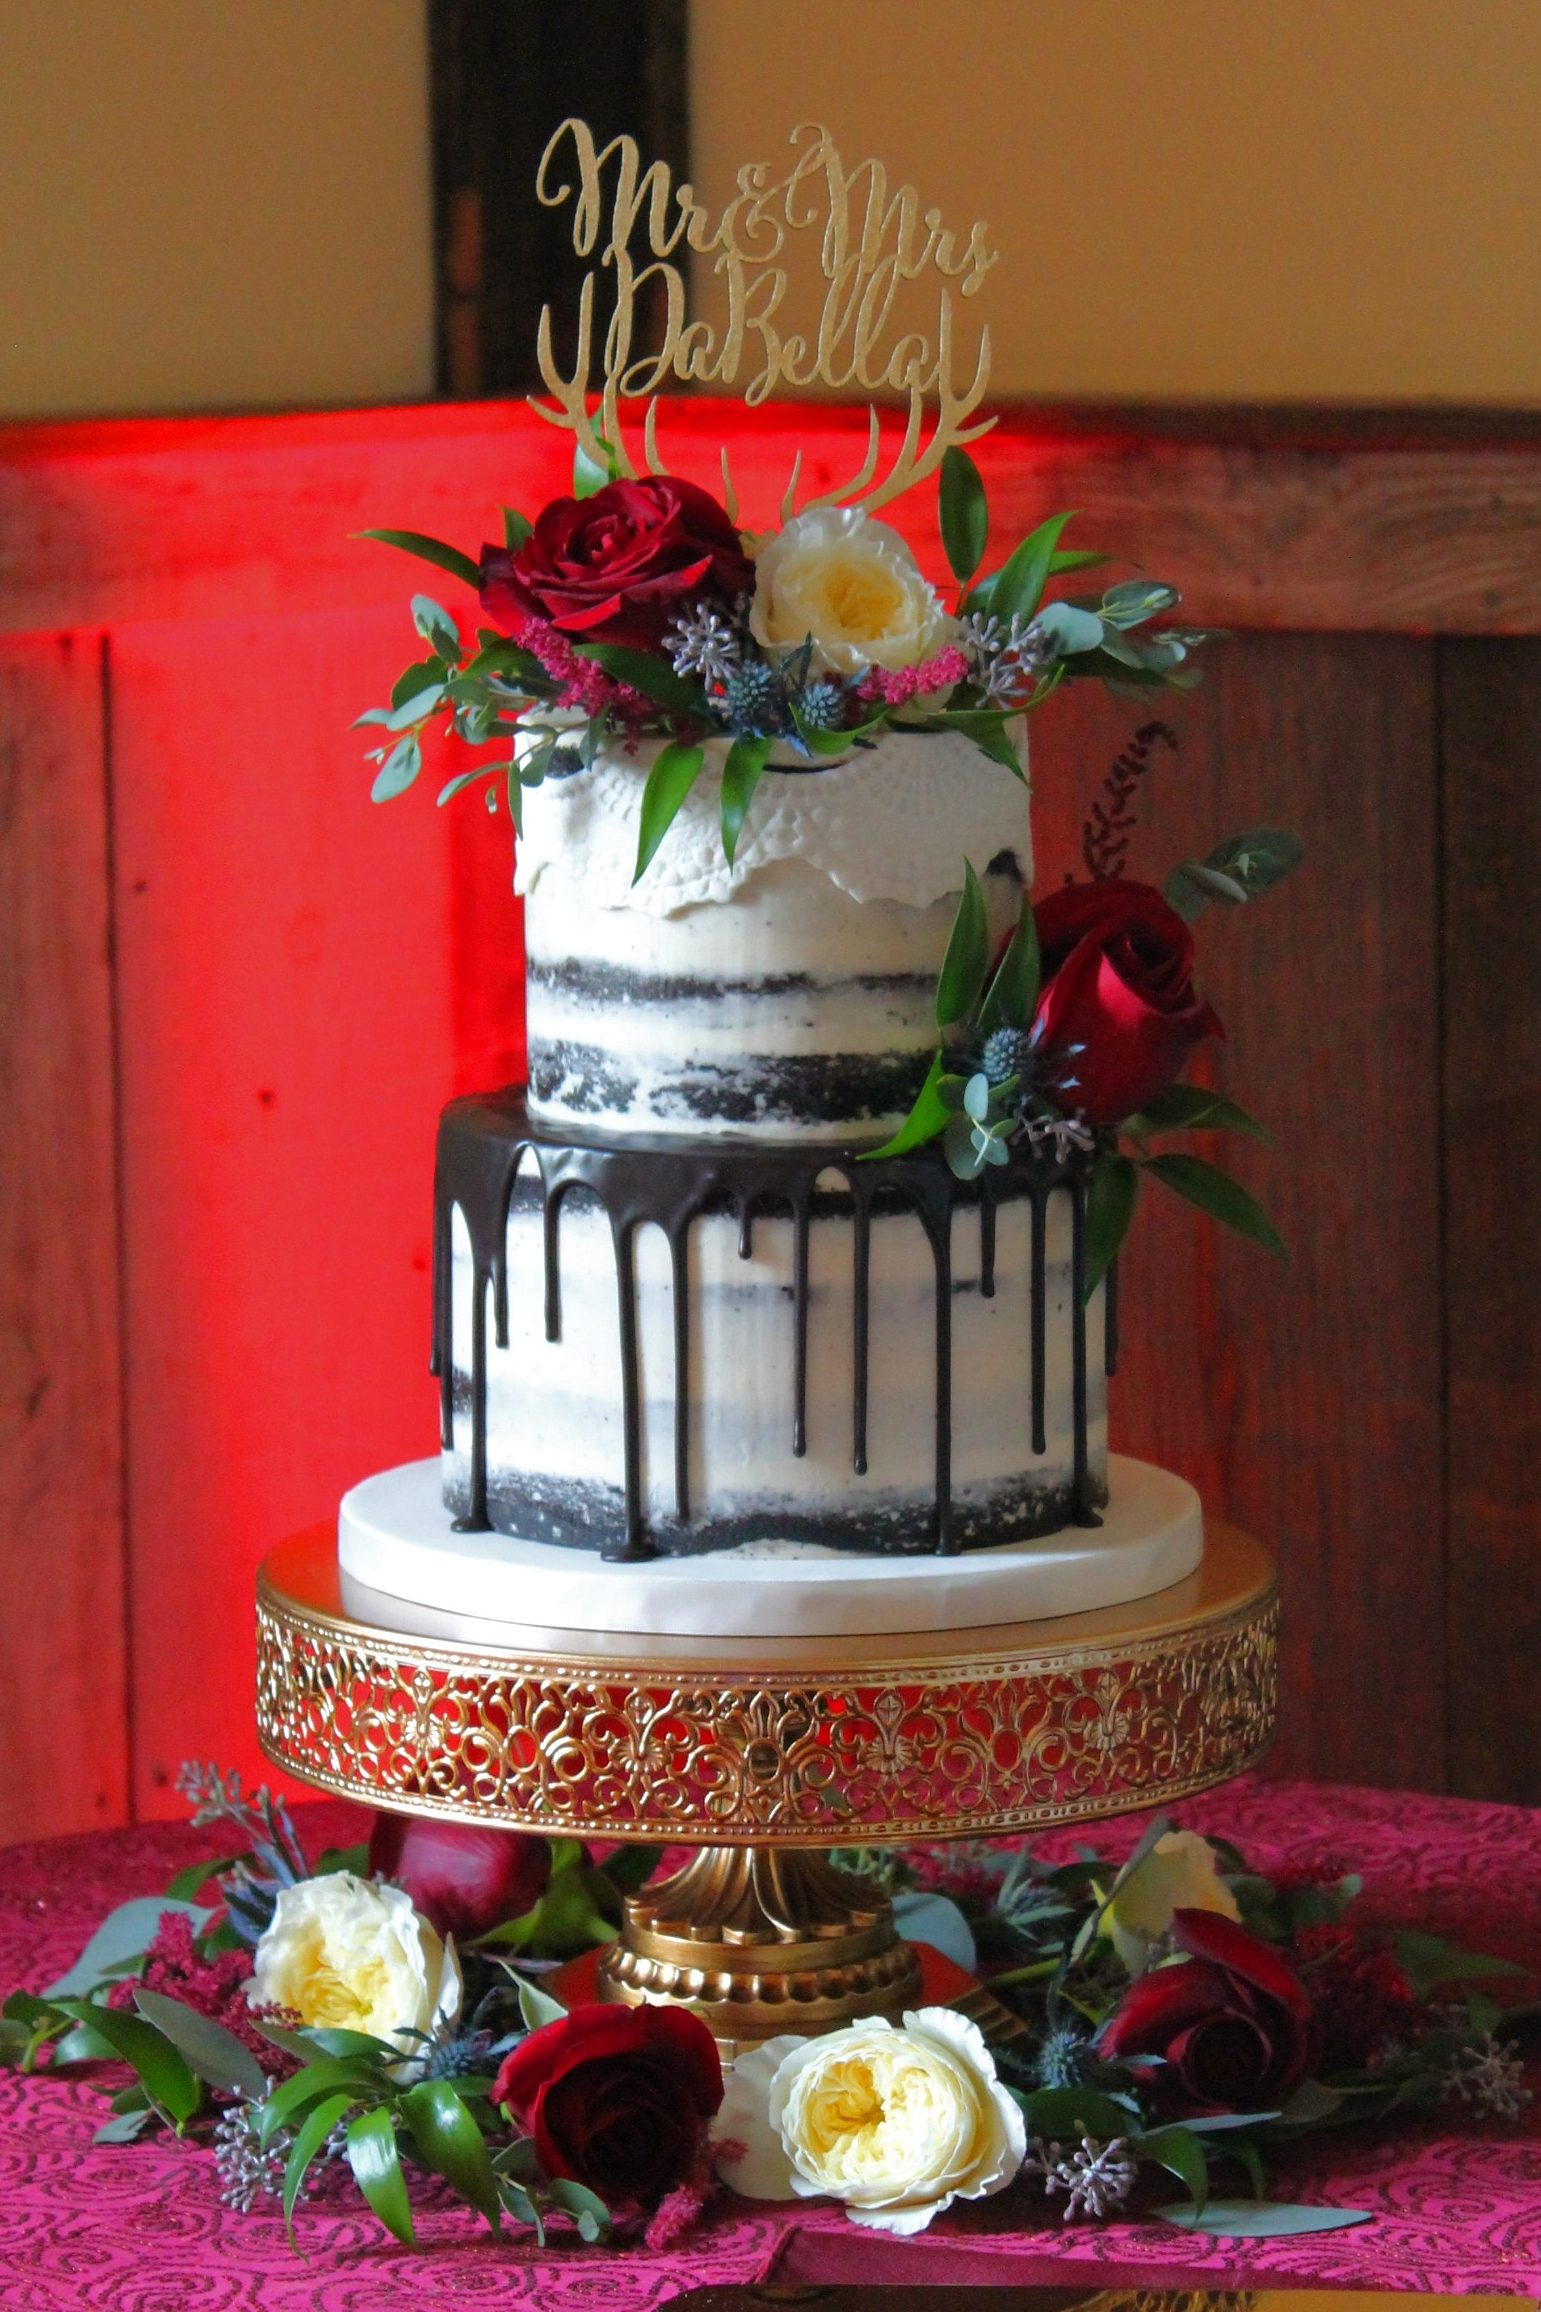 Chocolate Semi Naked Drip cake with fresh flowers from Four Oaks Bakery in Pittsburgh, PA